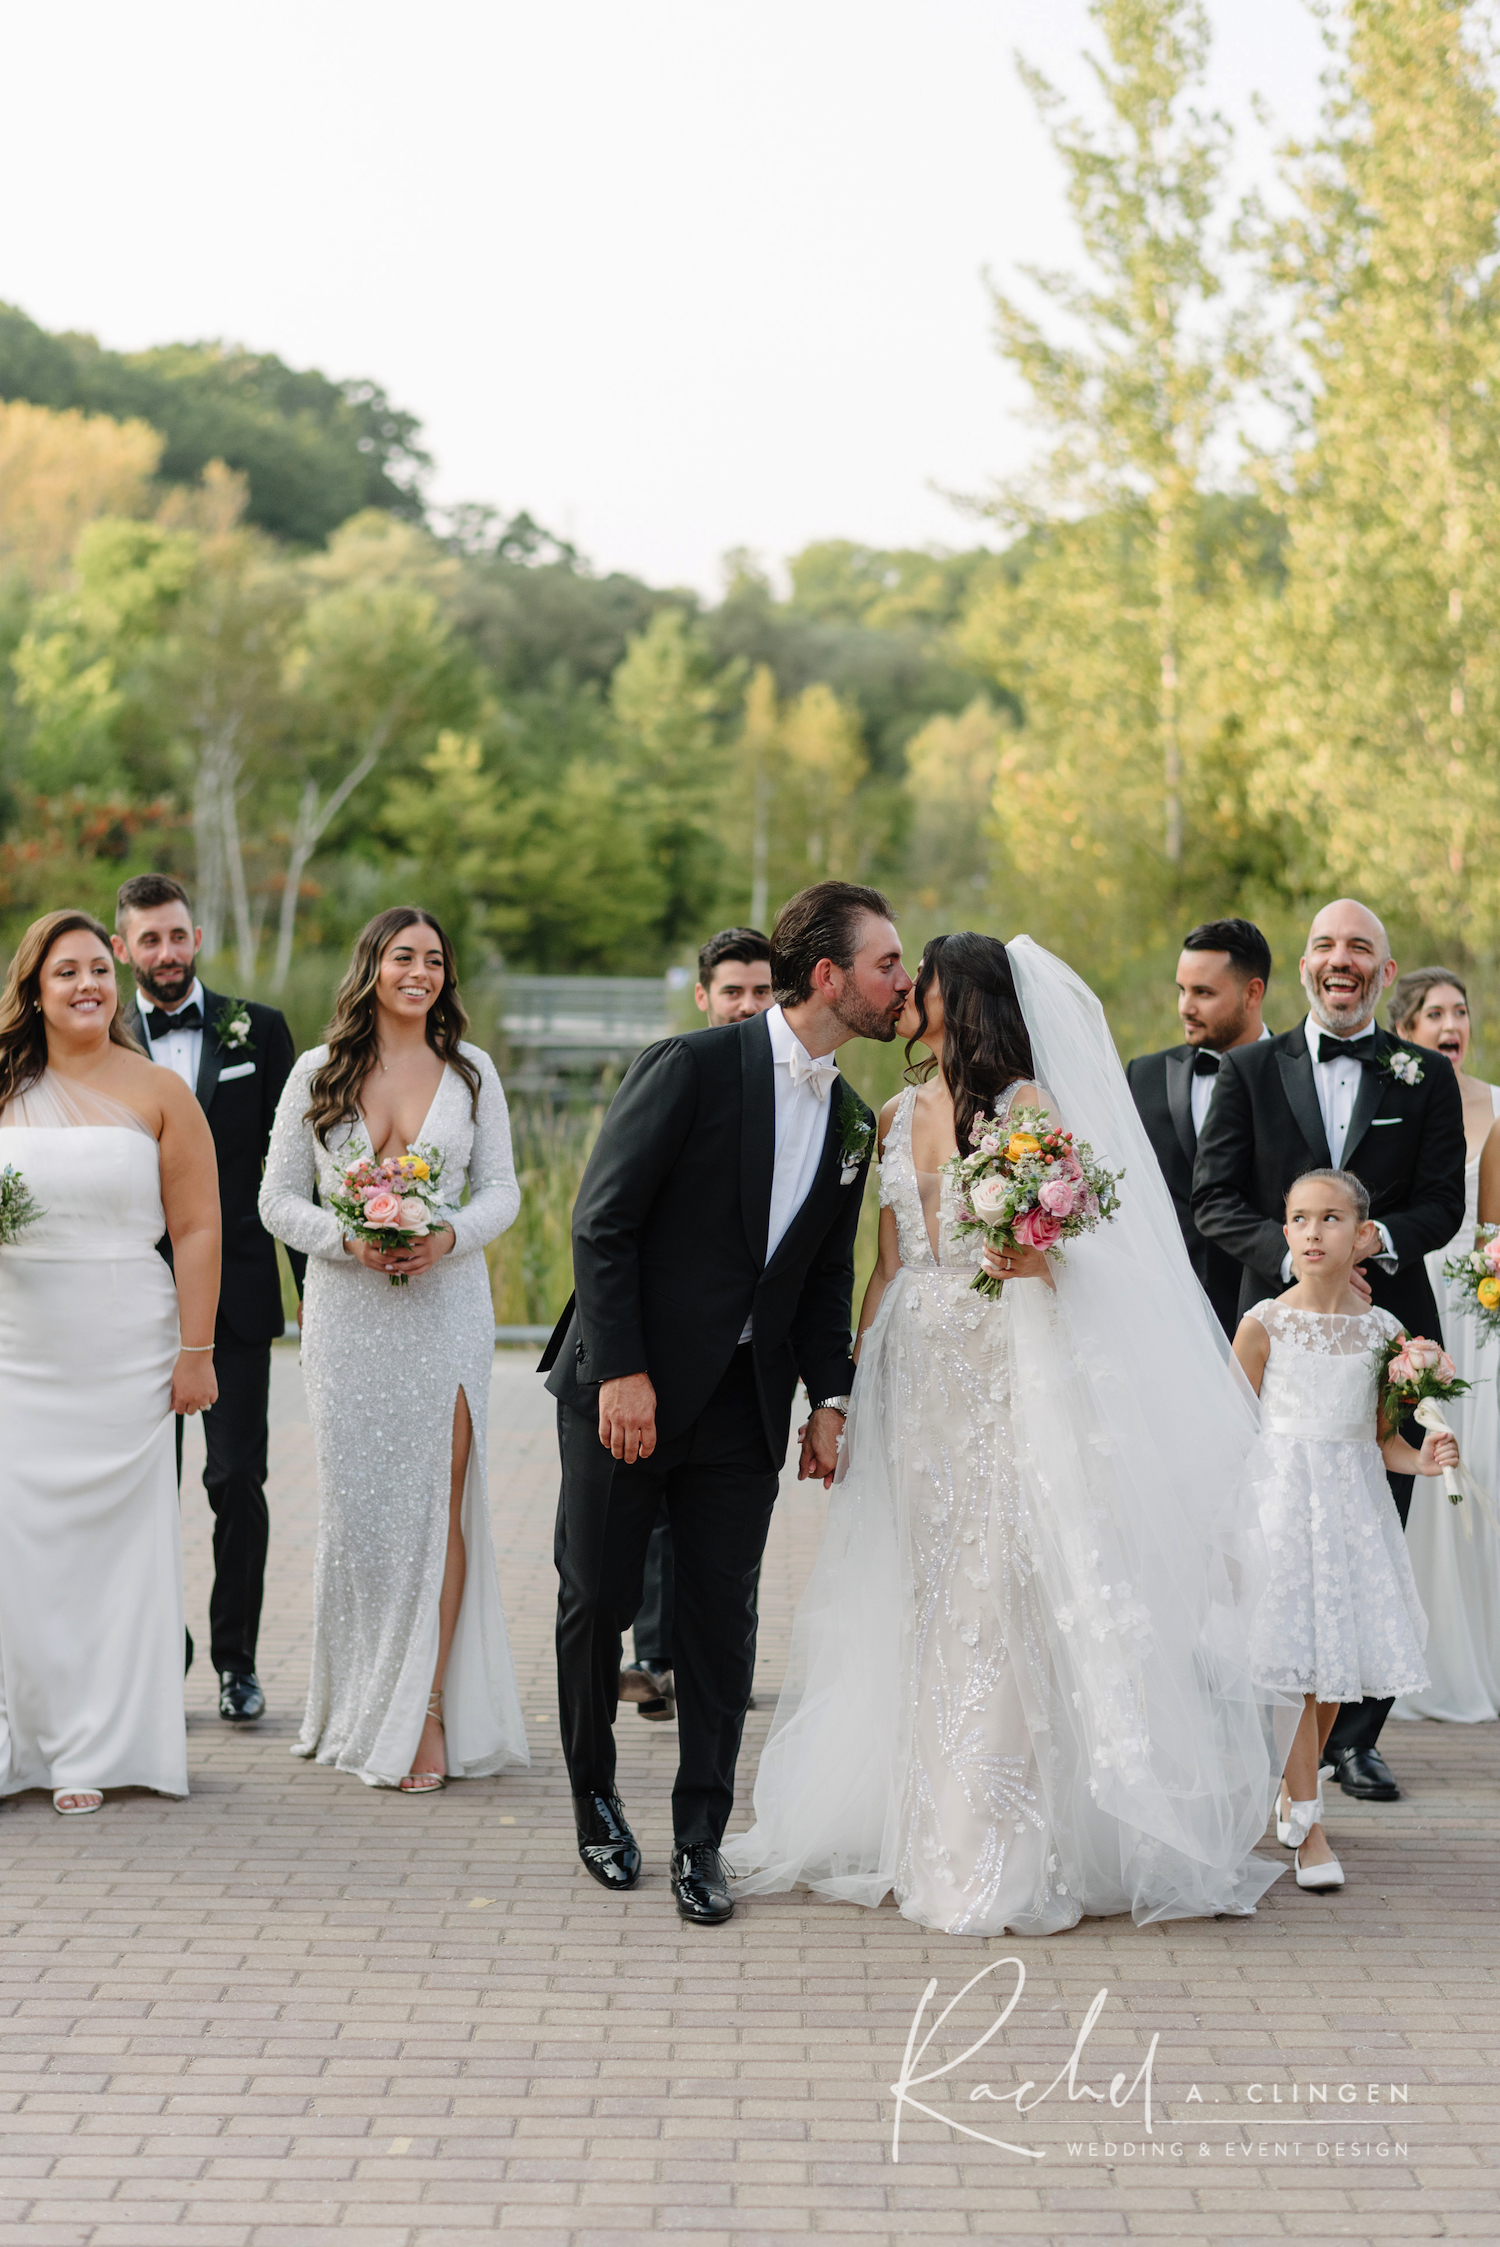 alessia andrea wedding